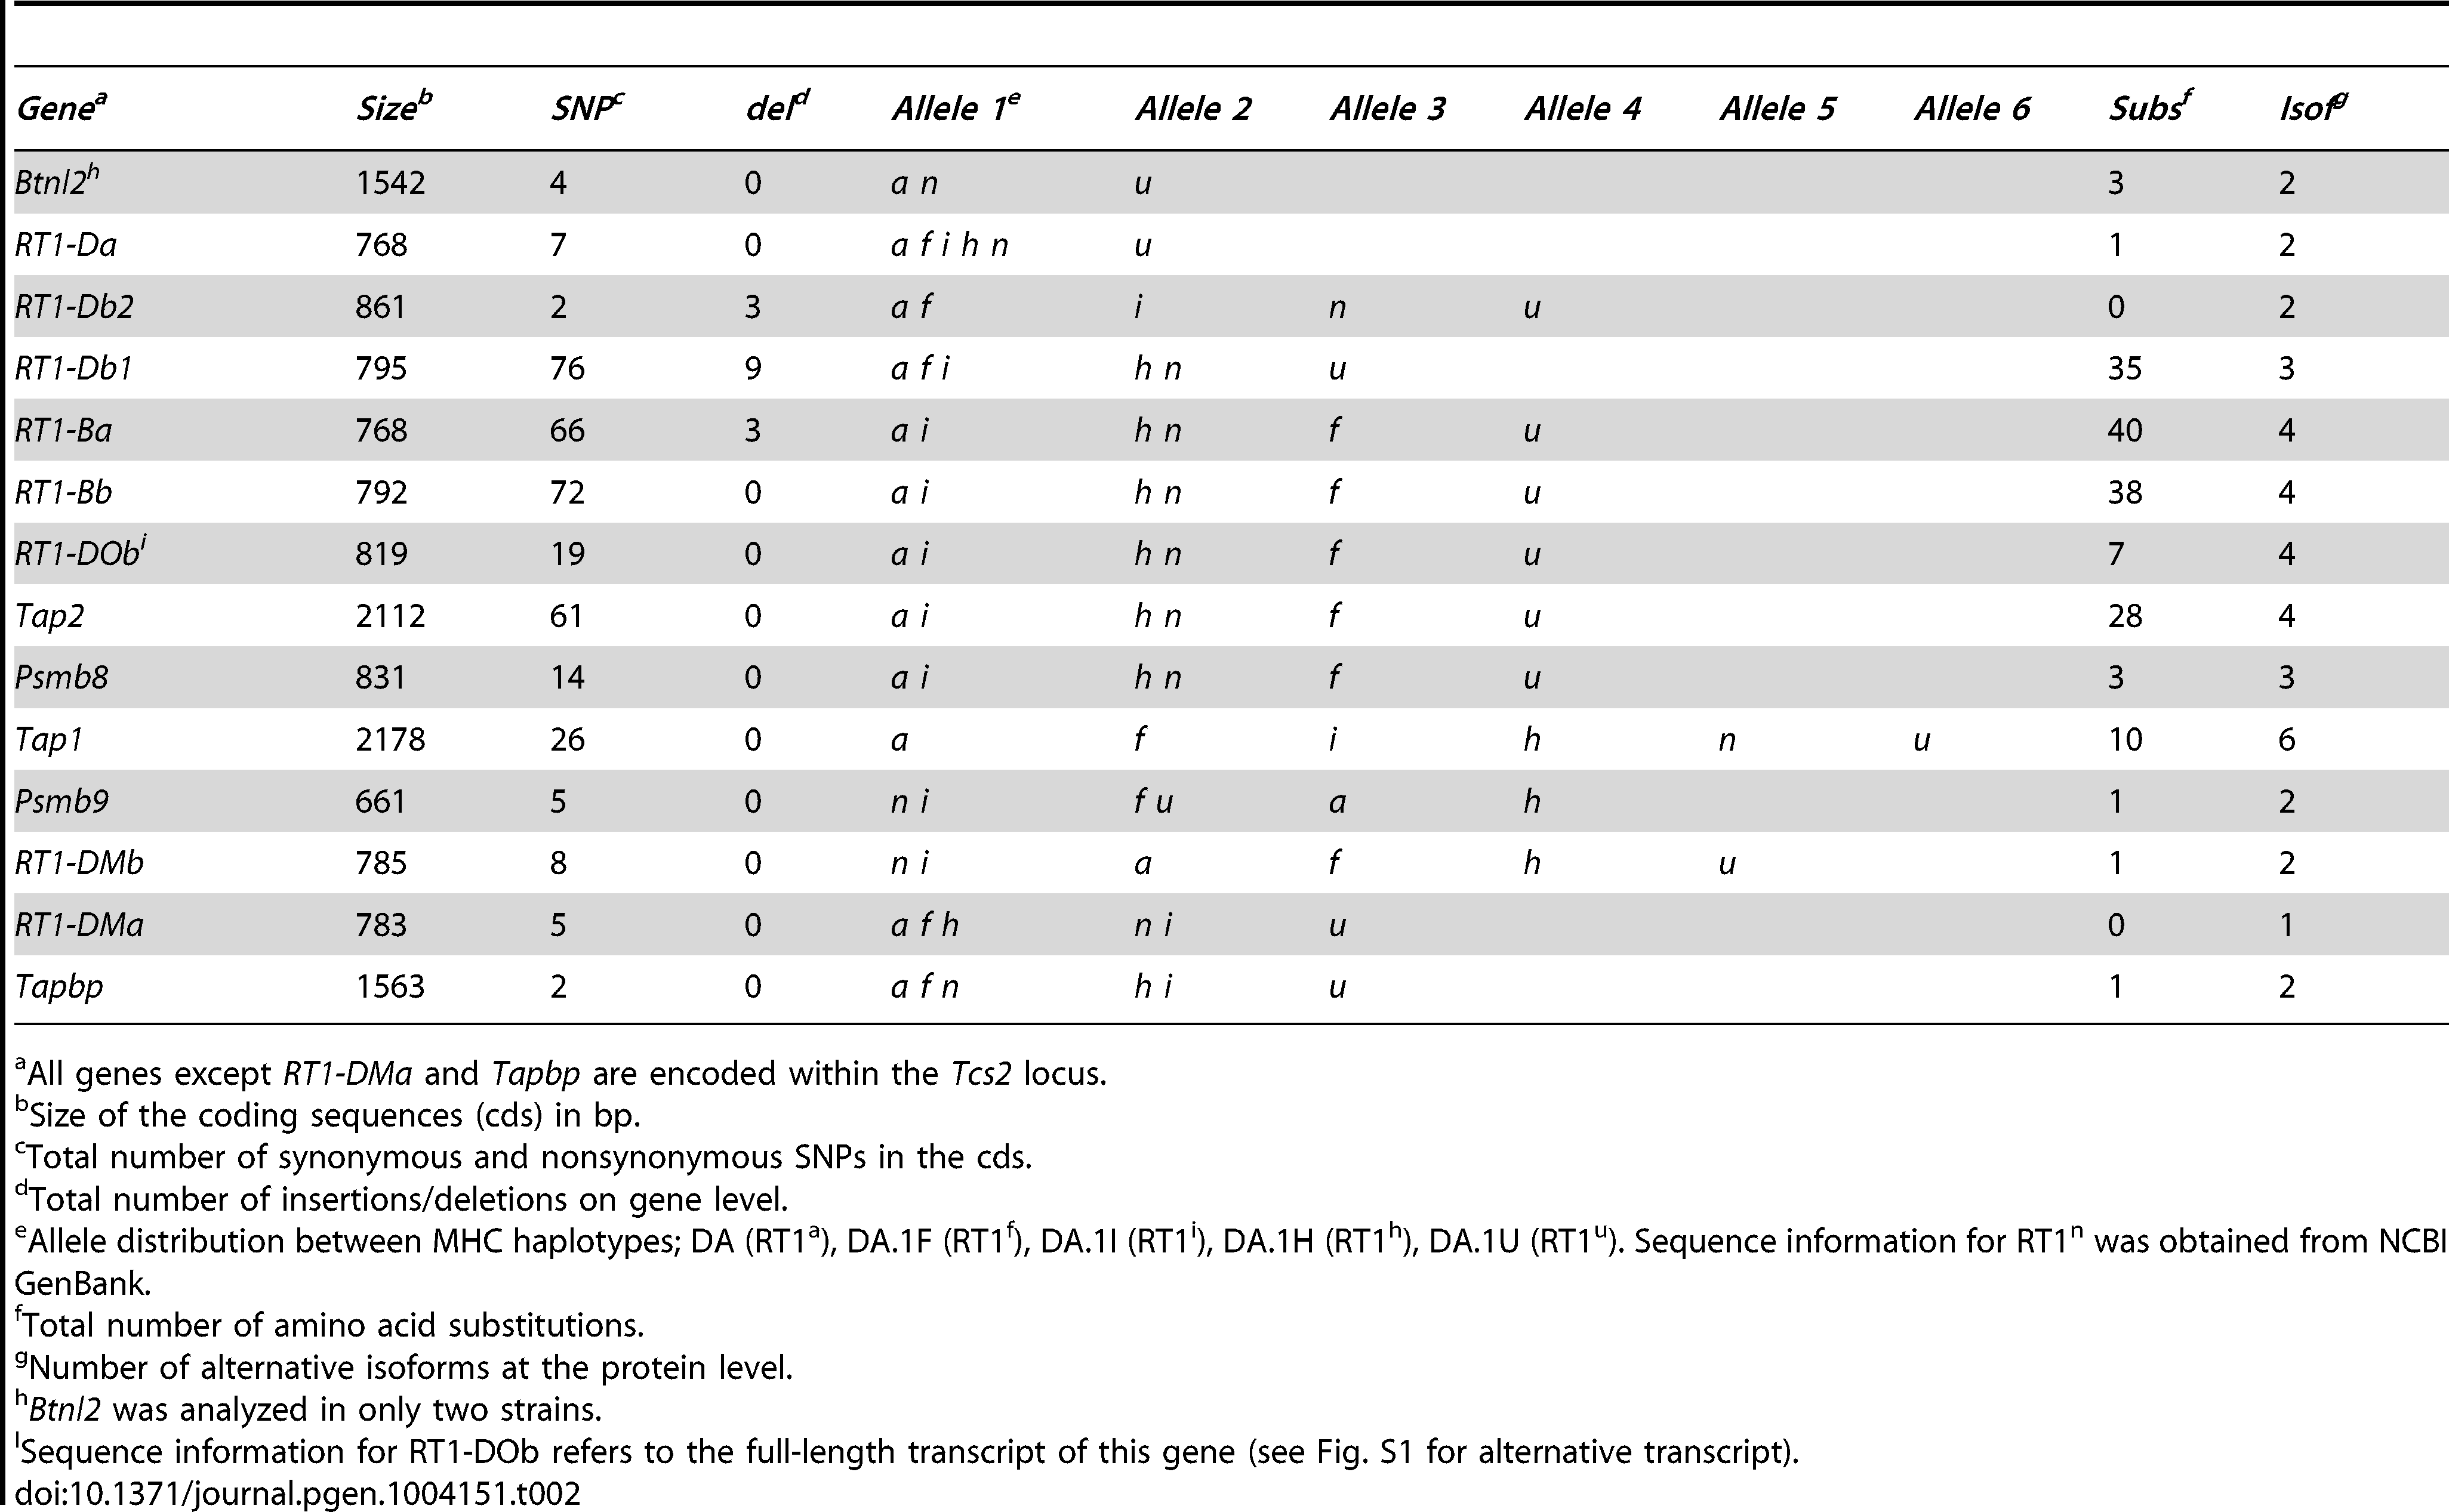 Sequence variants and allele distribution of genes in six rat MHC haplotypes.